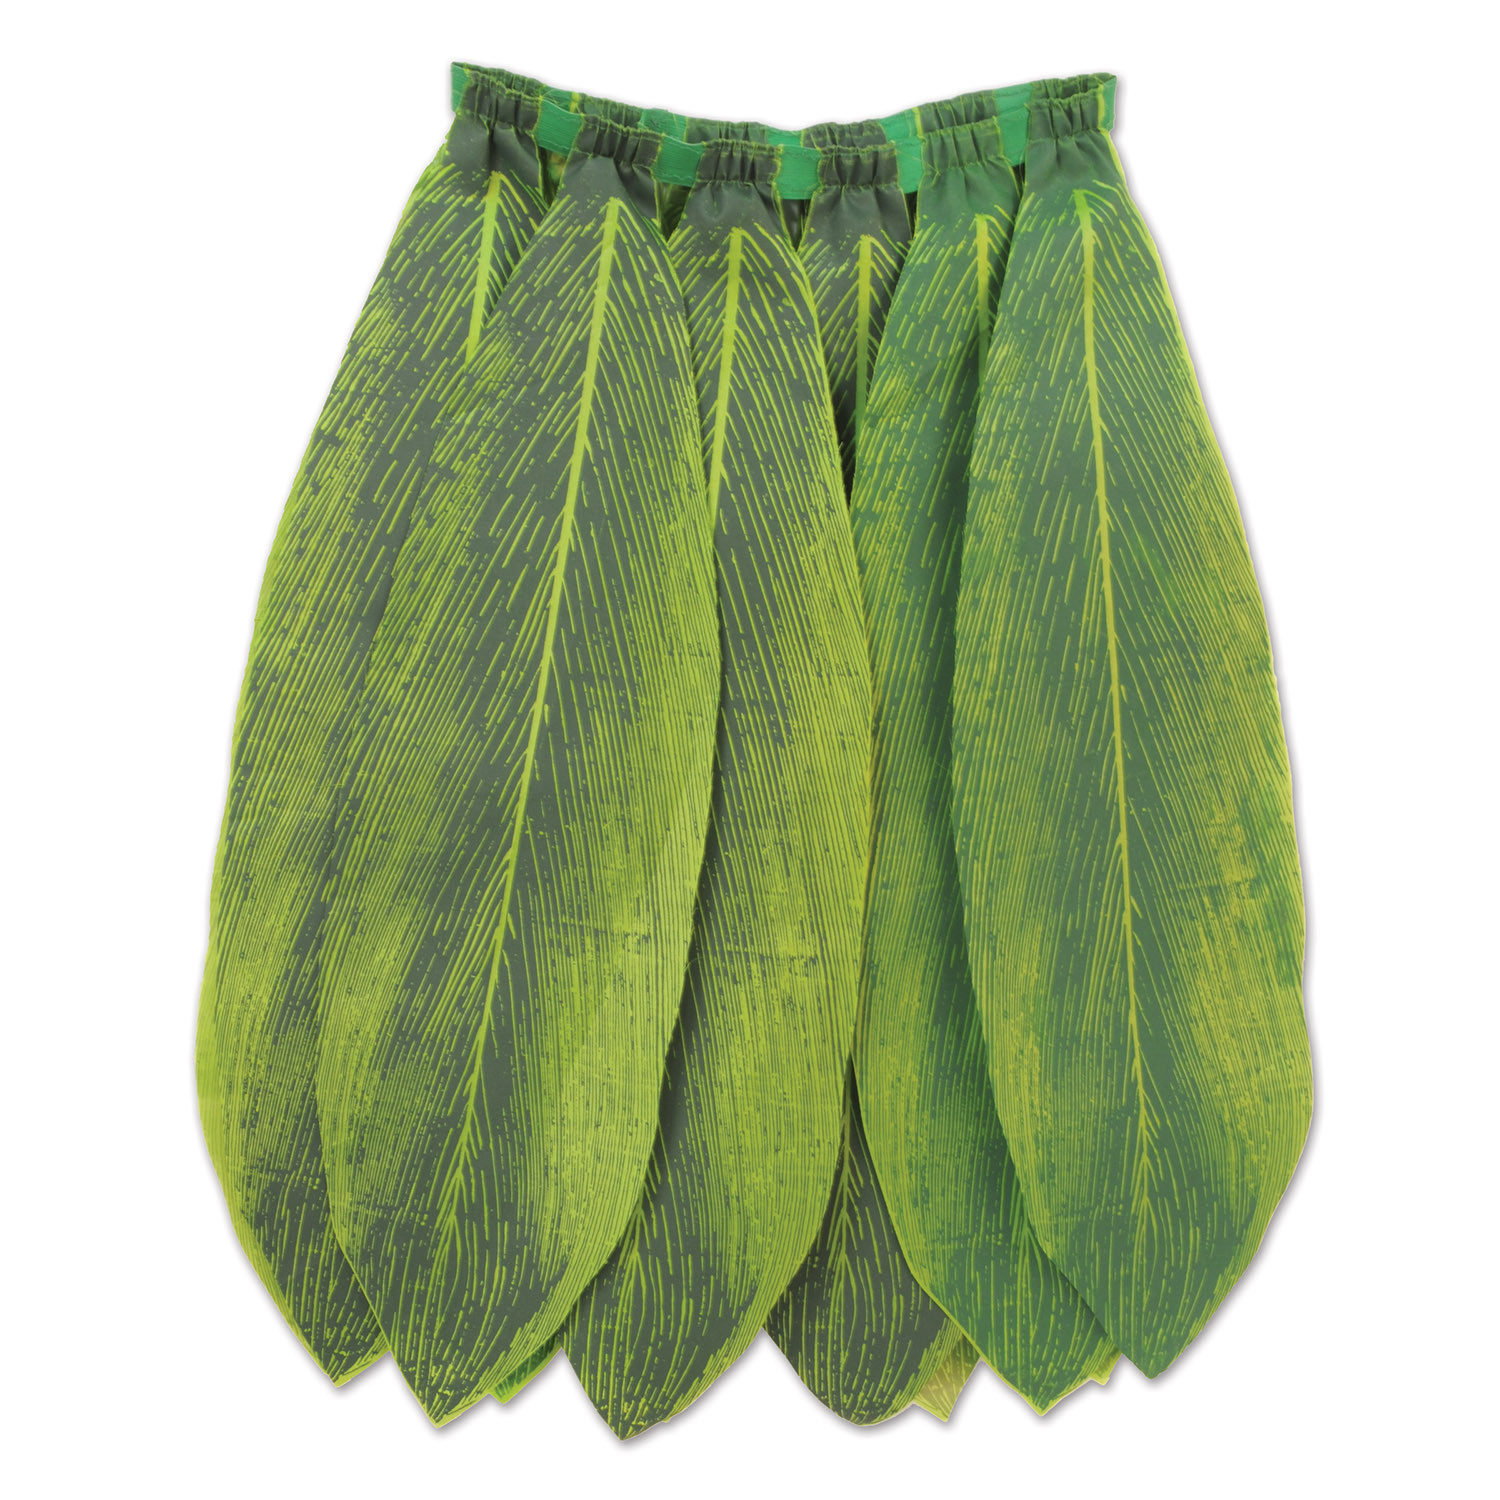 Ti Leaf Hula Skirt (Pack of 6) Ti Leaf, Hula Skirt, Green Leaf Skirt, Costume Accessories, Inexpensive luau party supplies, Island themed ideas, Wholesale party goods, Cheap party supplies, party skirts, halloween costume accessories